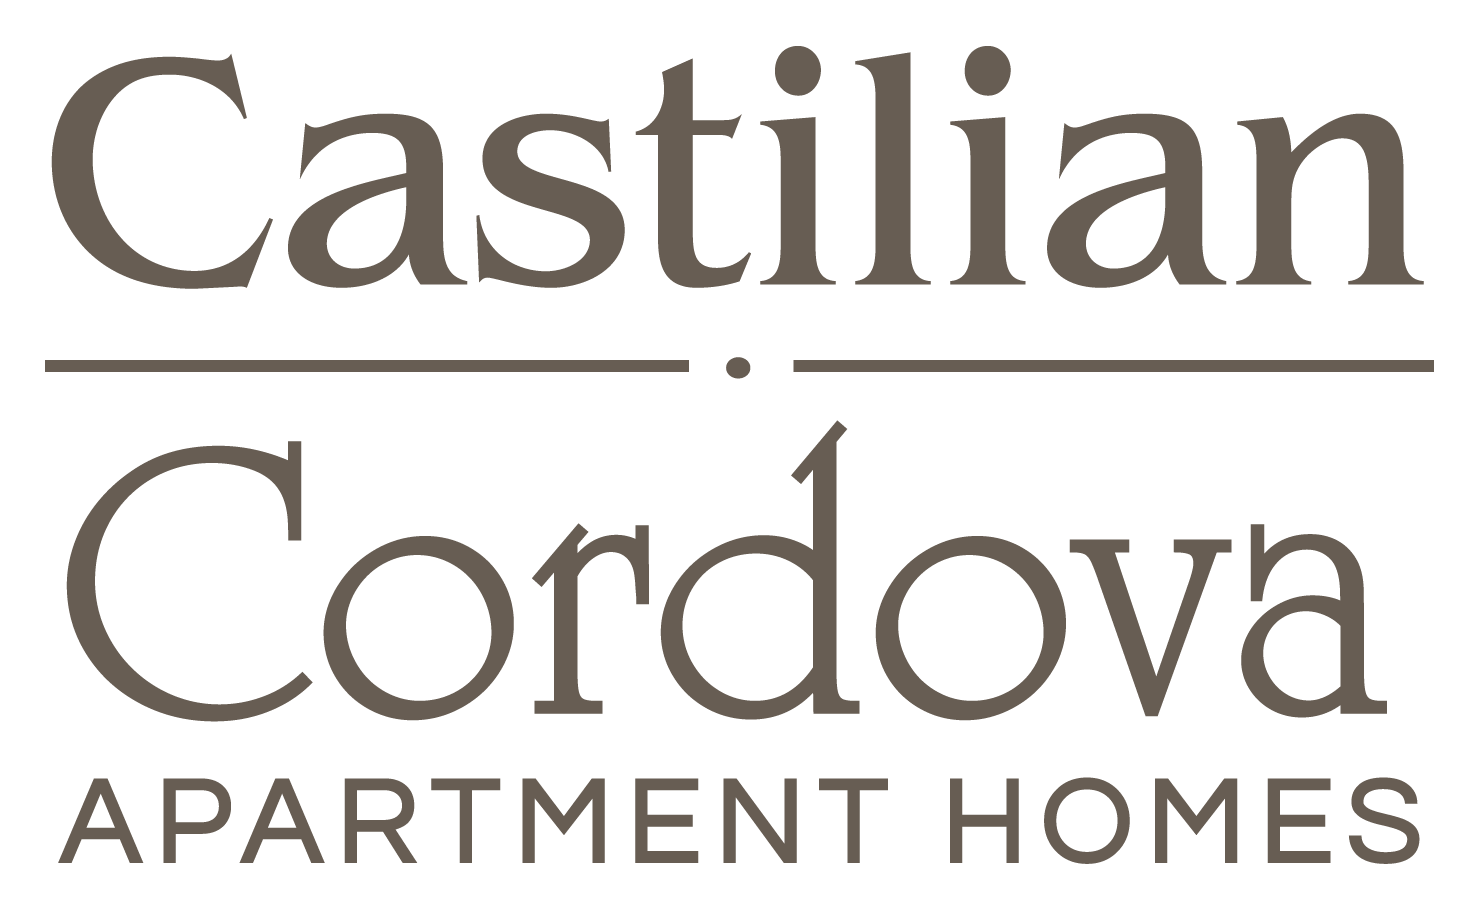 Castilian and Cordova Apartment Homes logo